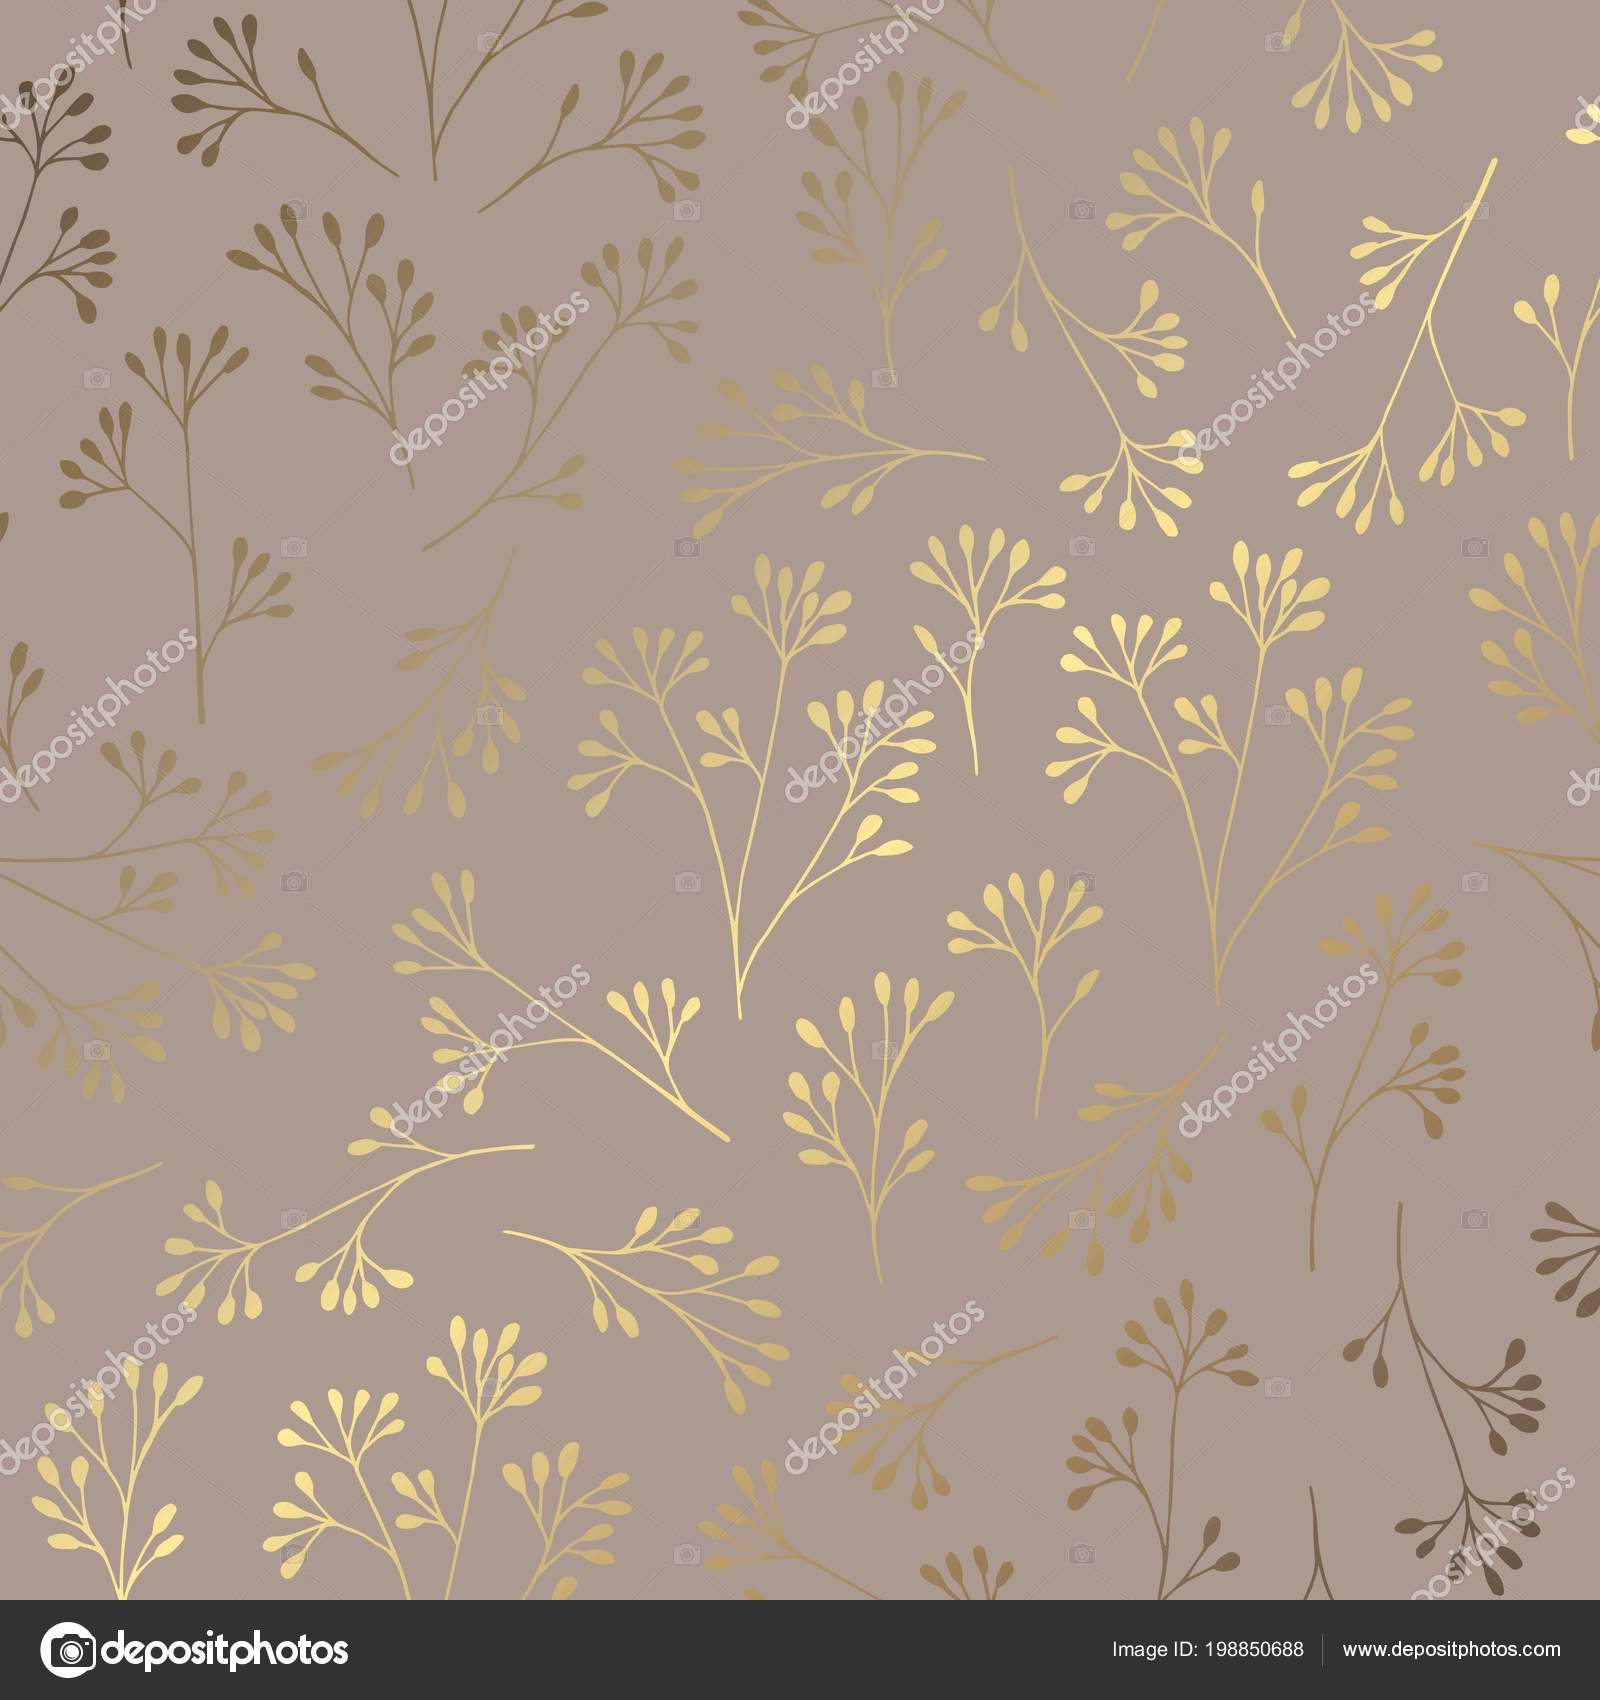 Luxury Golden Floral Pattern On A Brown Background Elegant Decorative Vector For The Design Of Invitations Cards Covers Business